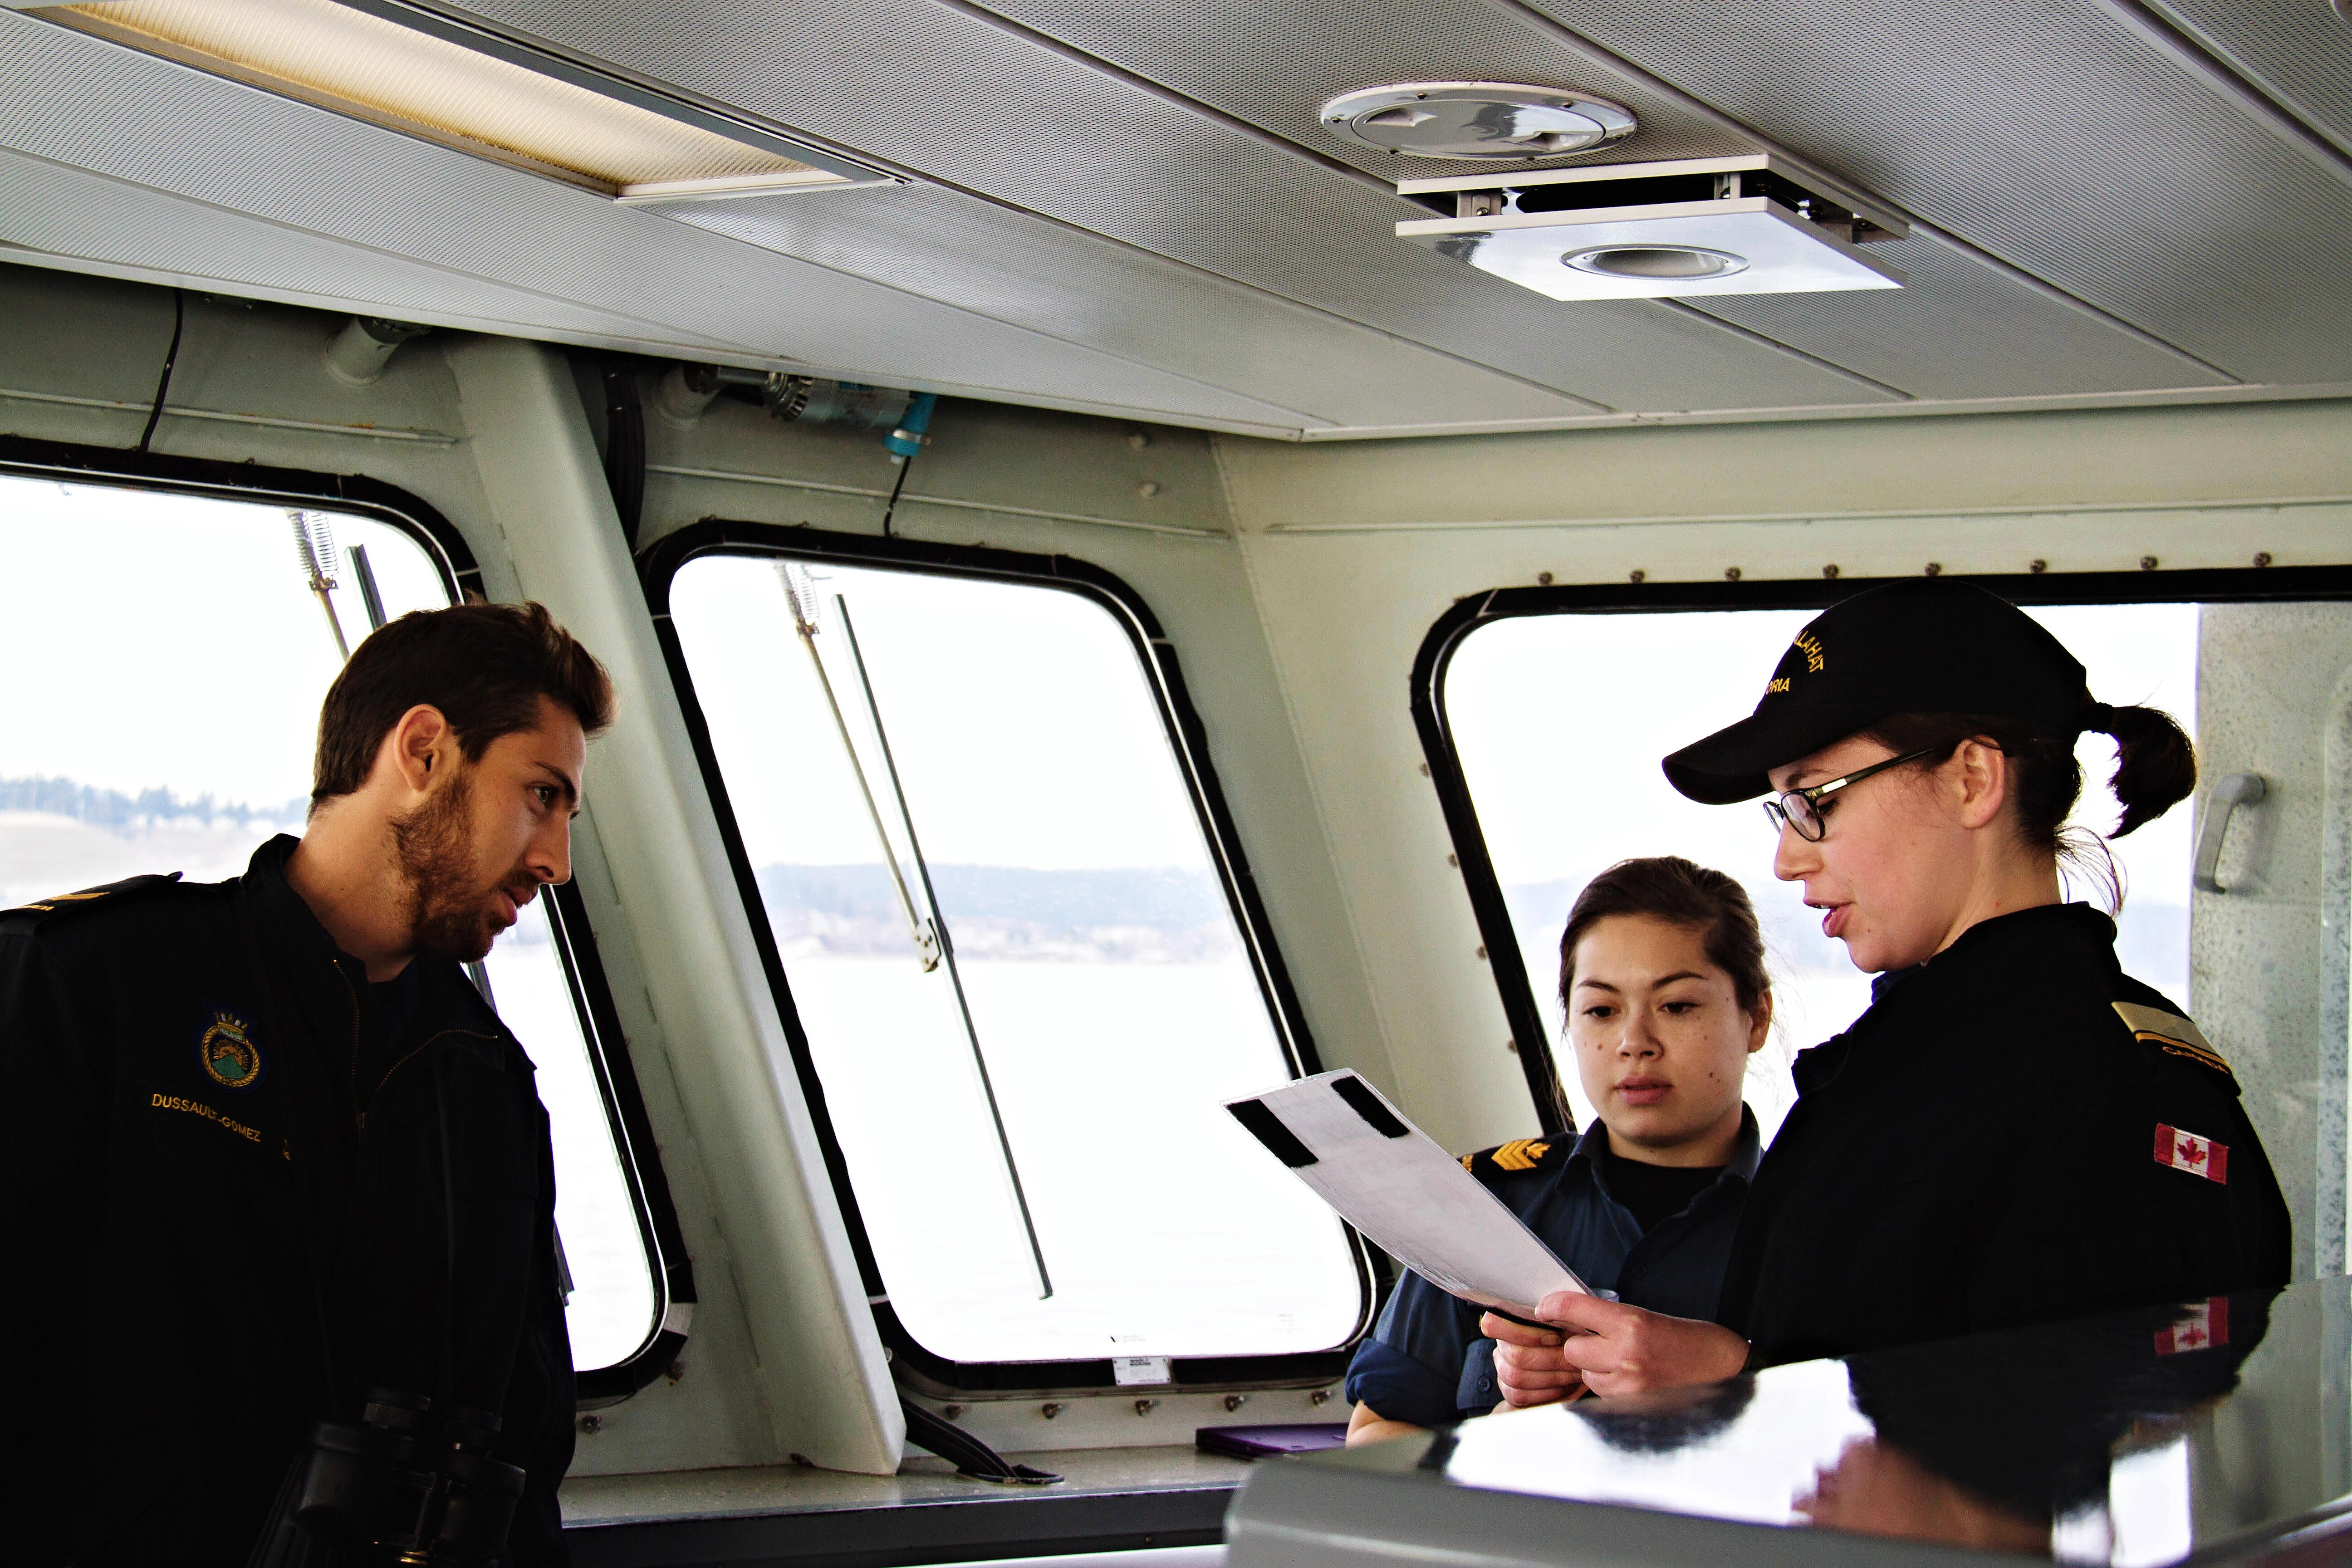 NCdt Elizabeth Mifsud-Sweeney (right) practices a lookout report while Petty Officer 2nd Class Colleen McInnis (center) and Leading Seaman Manuel Dussault-Gomez (left) provide instruction and guidance.